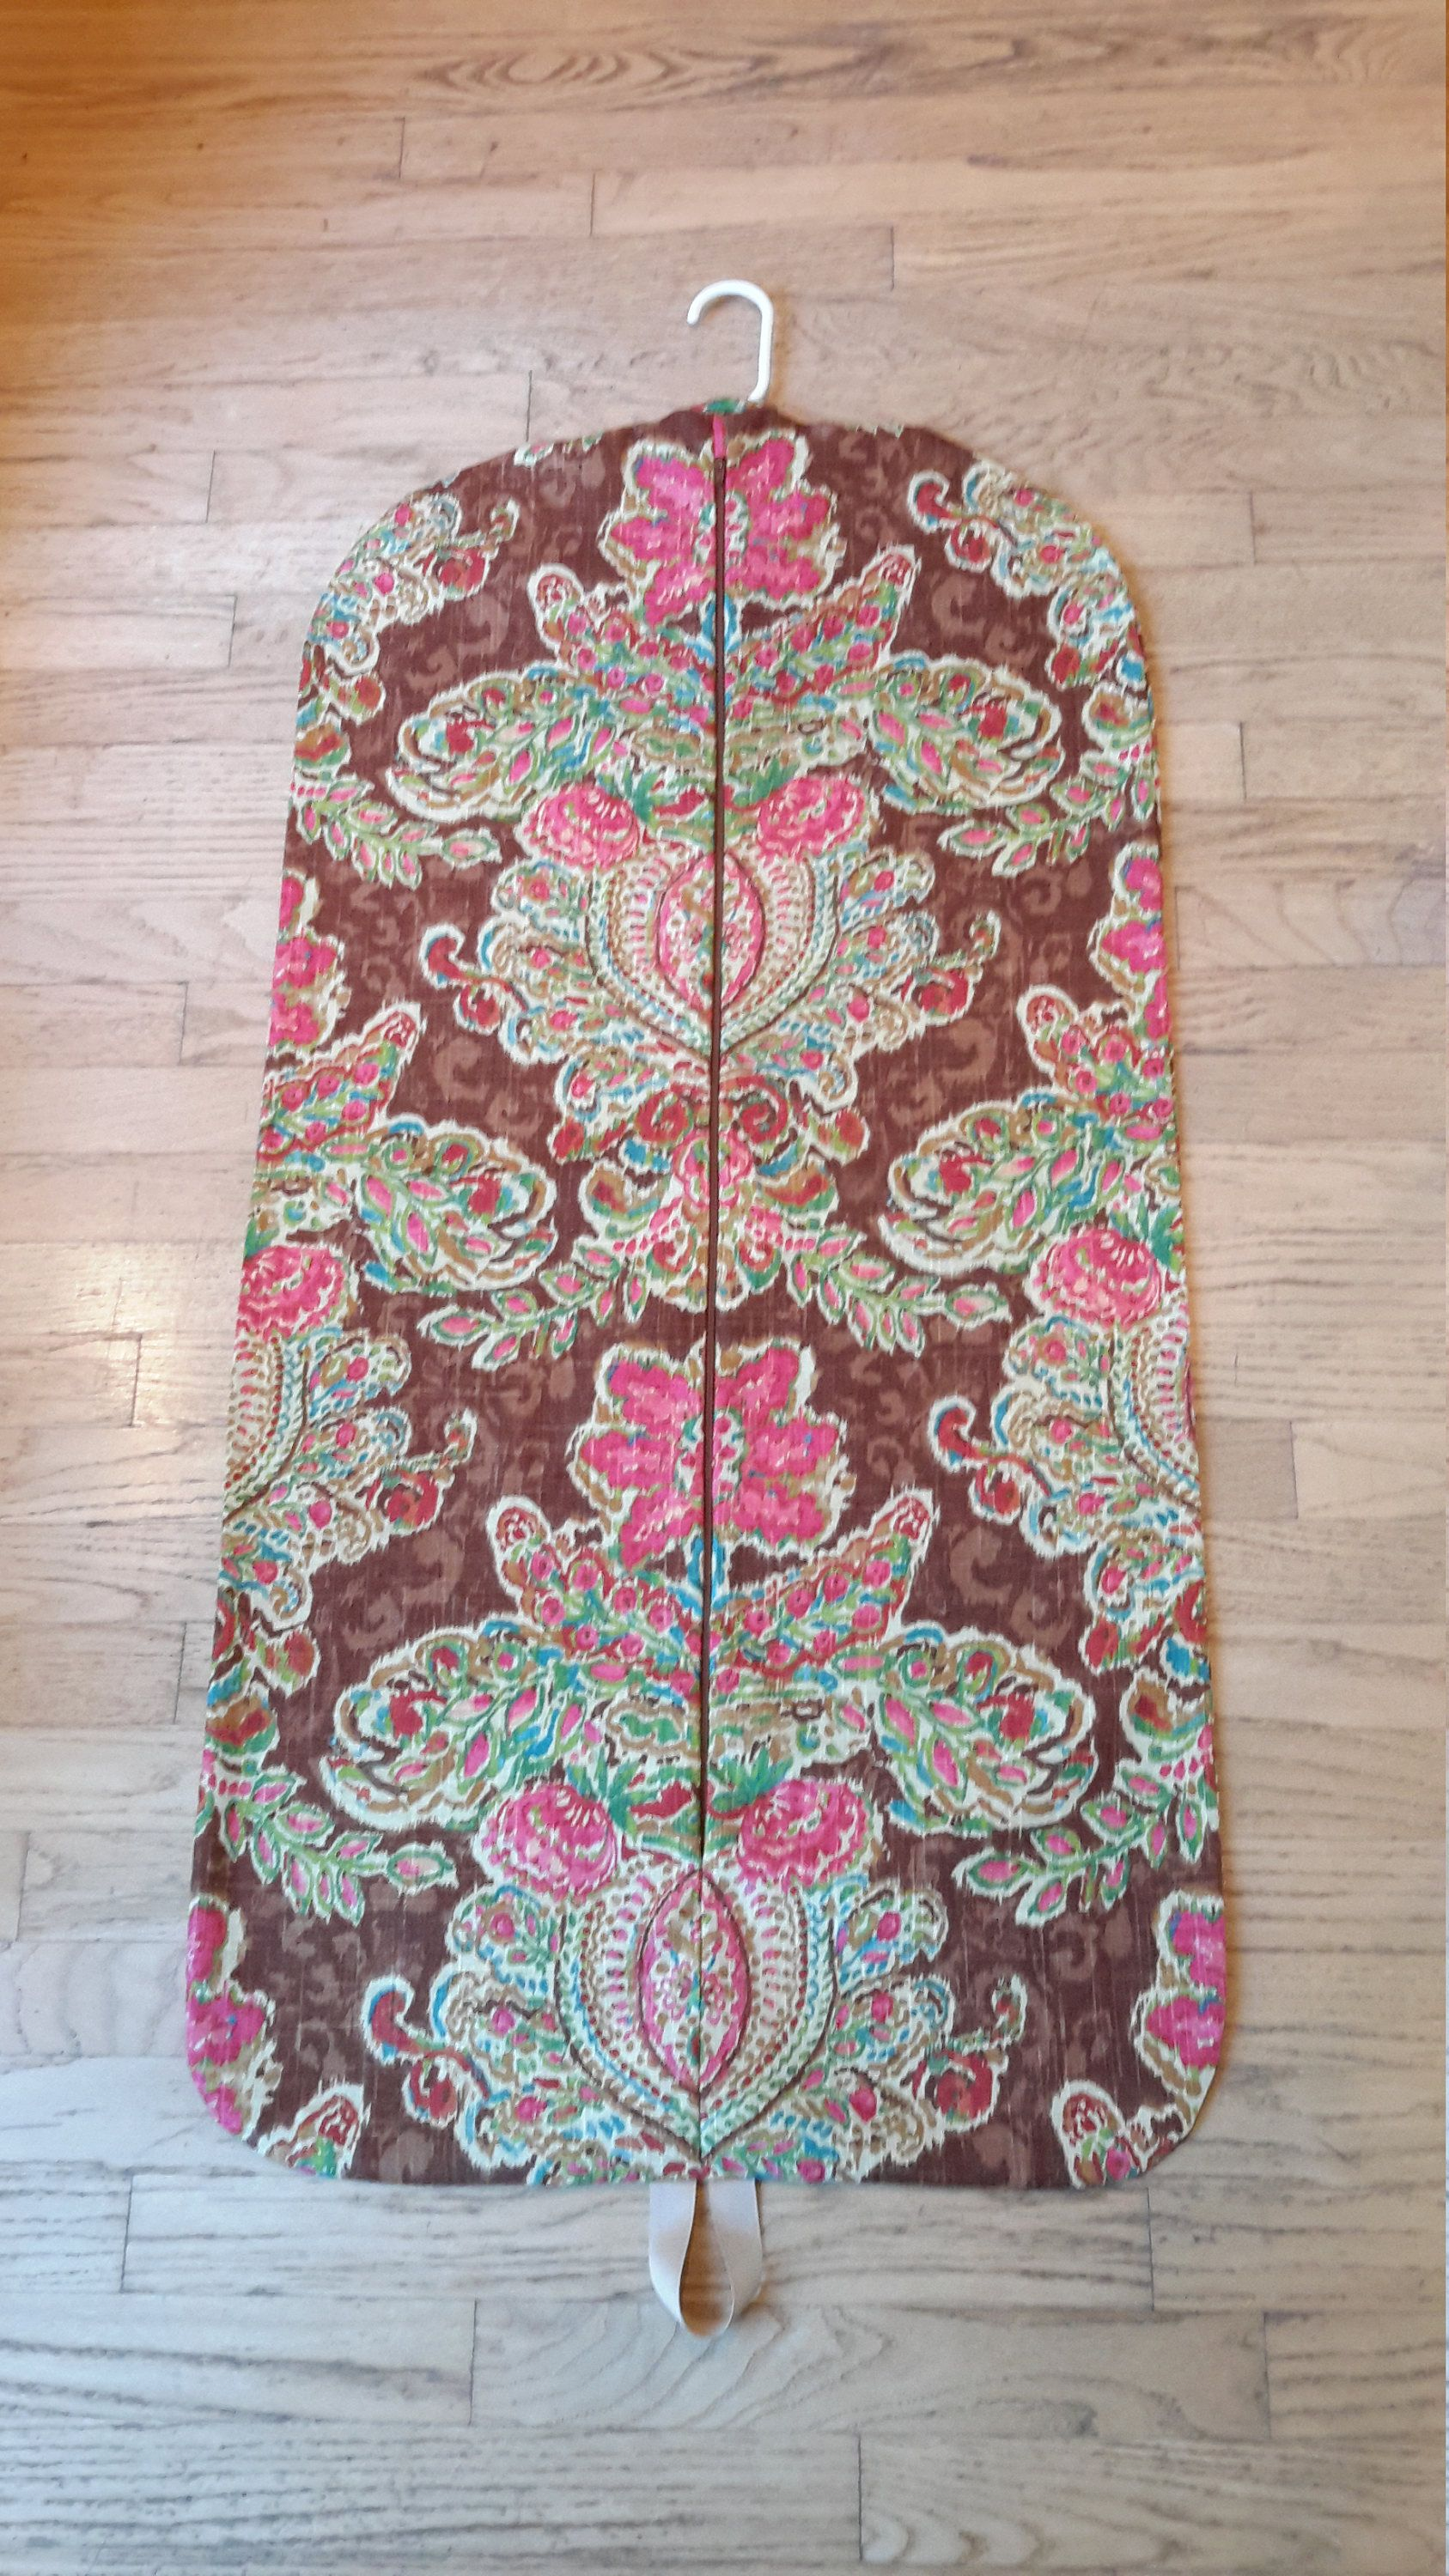 Map Of Paisley%0A Women u    s Brown Paisley Medallion Hanging Garment Bag by CarryItWell on Etsy